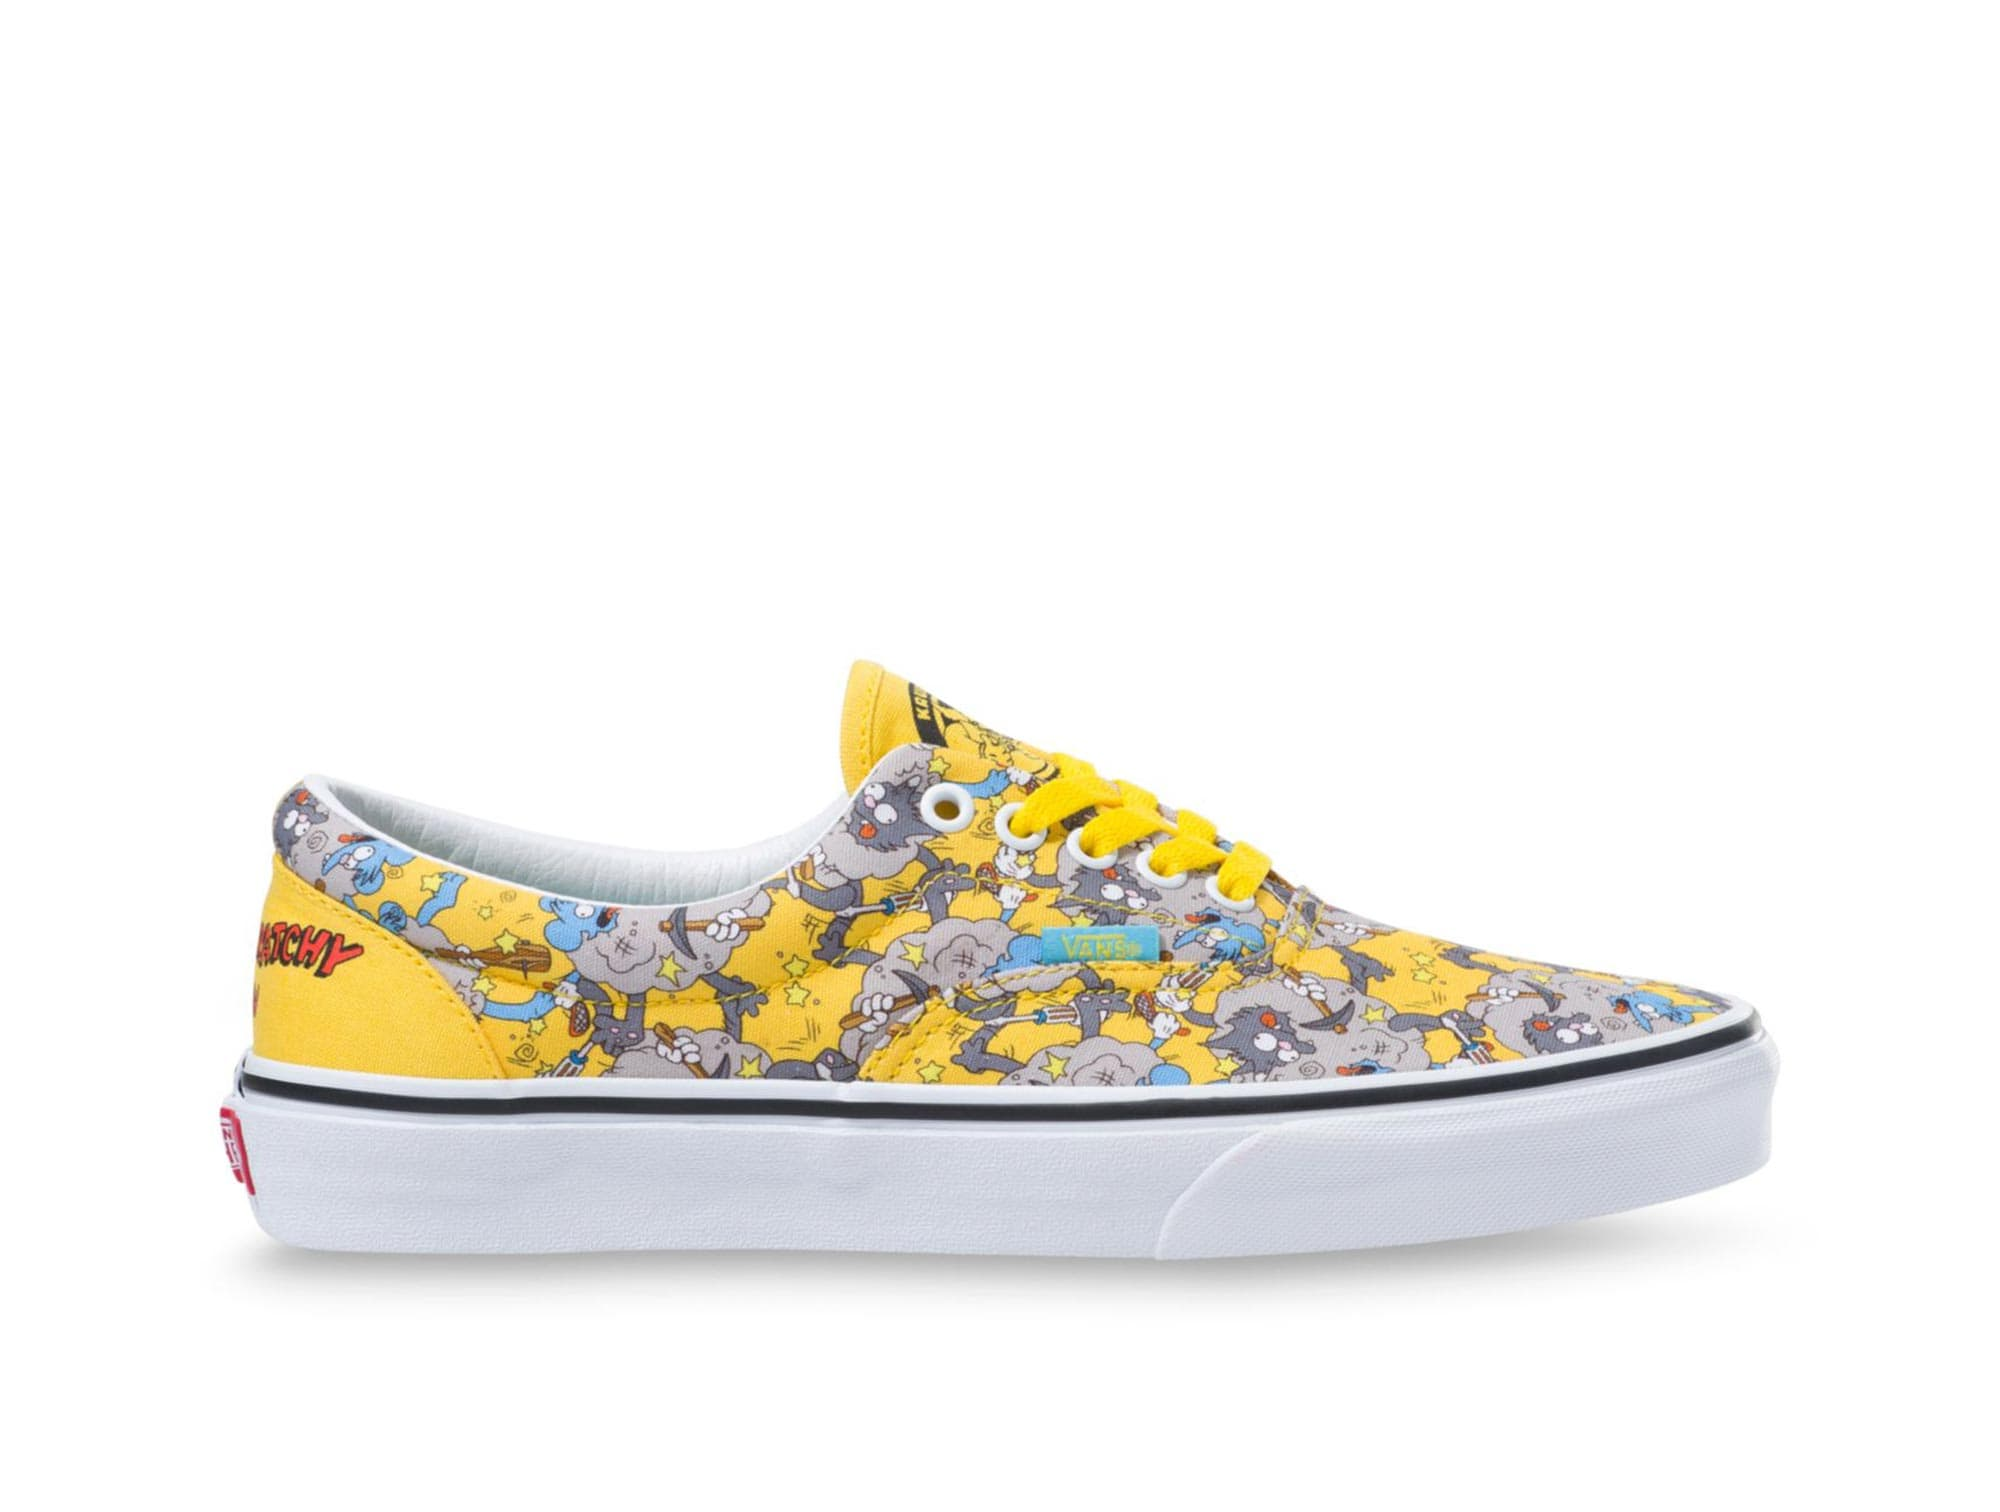 Zapatilla Vans Era The Simpsons Itchy & Scratchy Unisex Multicolor